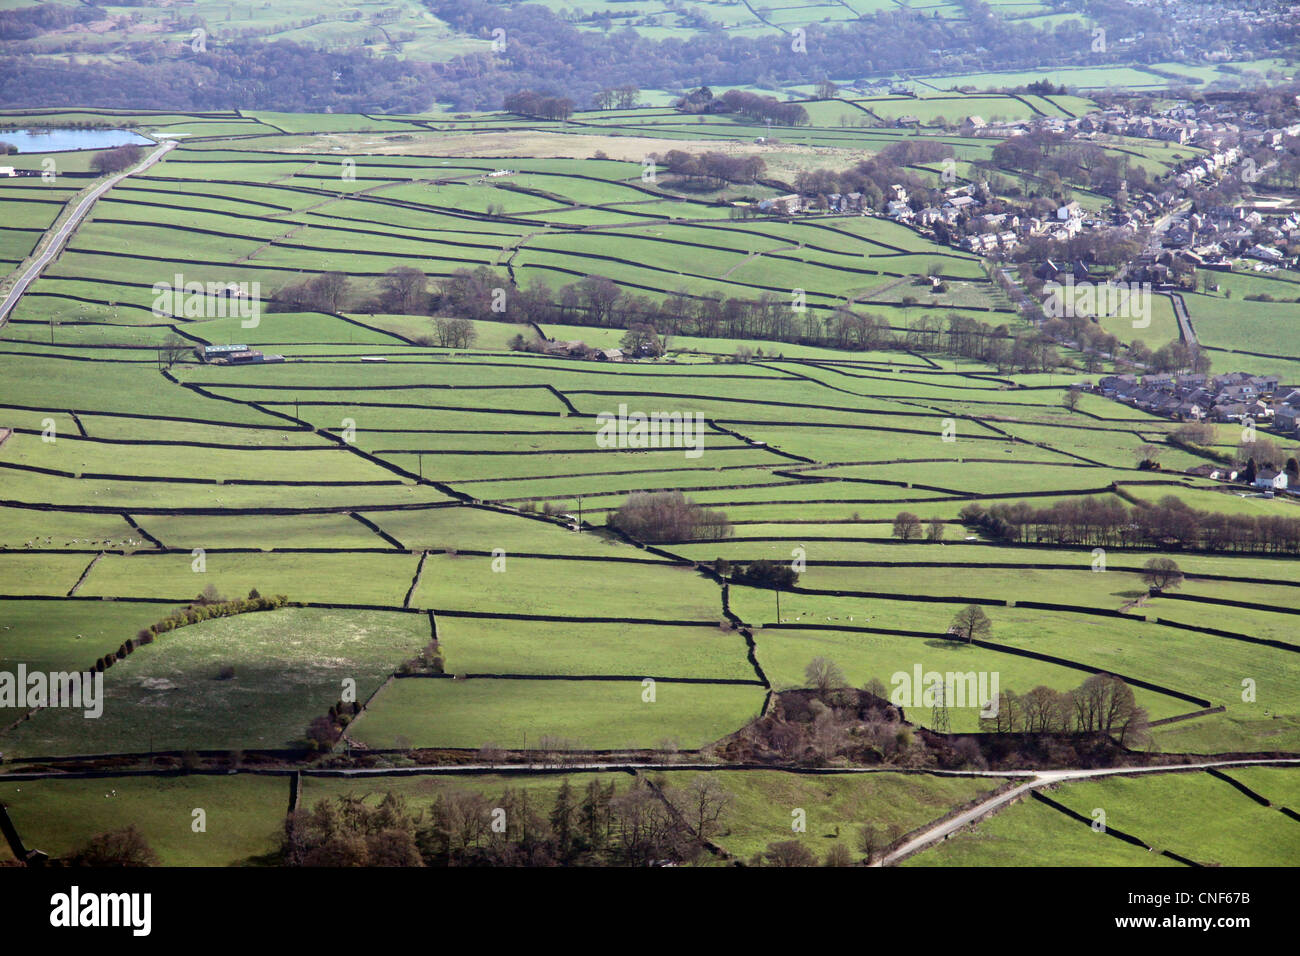 aerial view of English rural scenery with fields bounded by dry stone walls - Stock Image